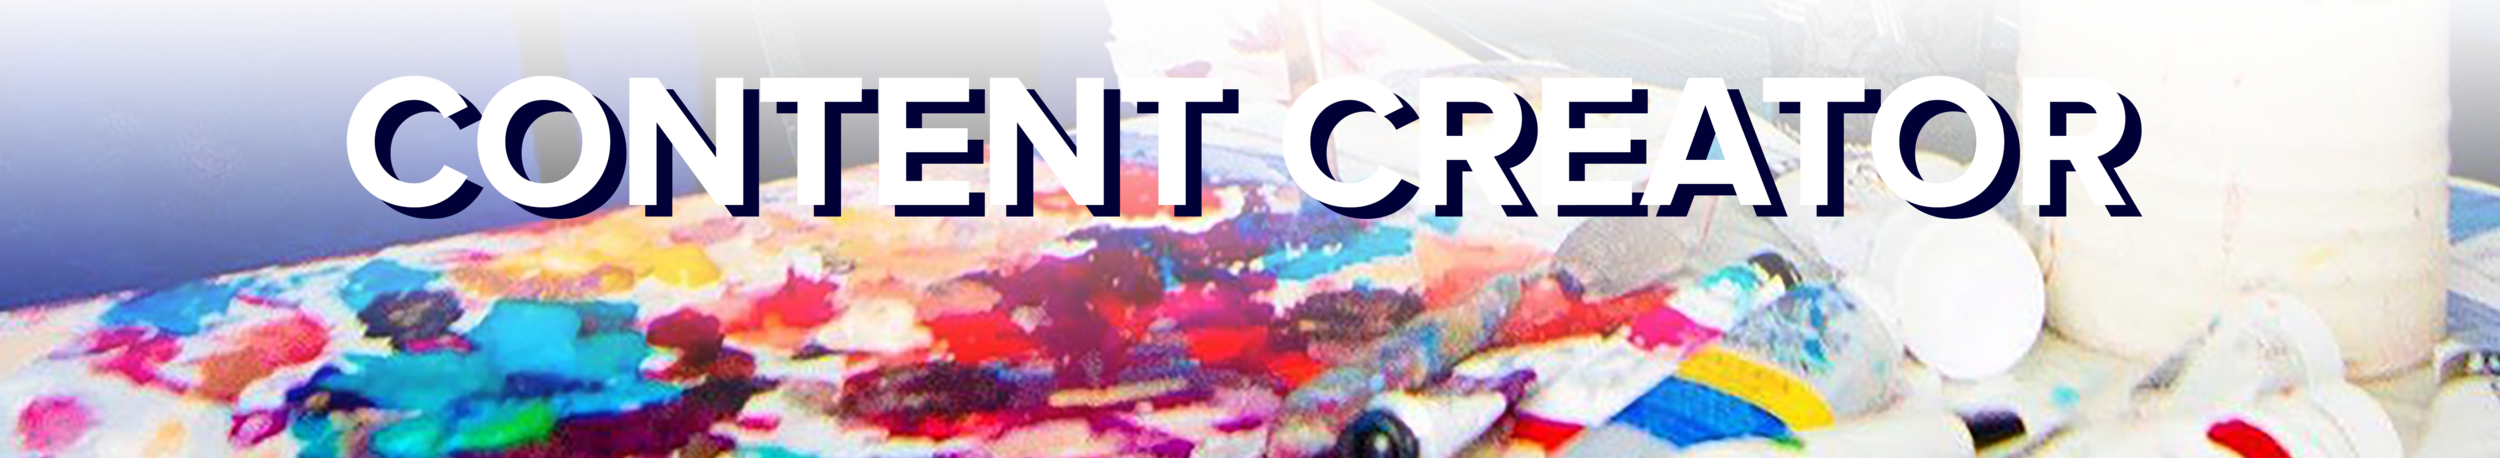 content creator banner.png